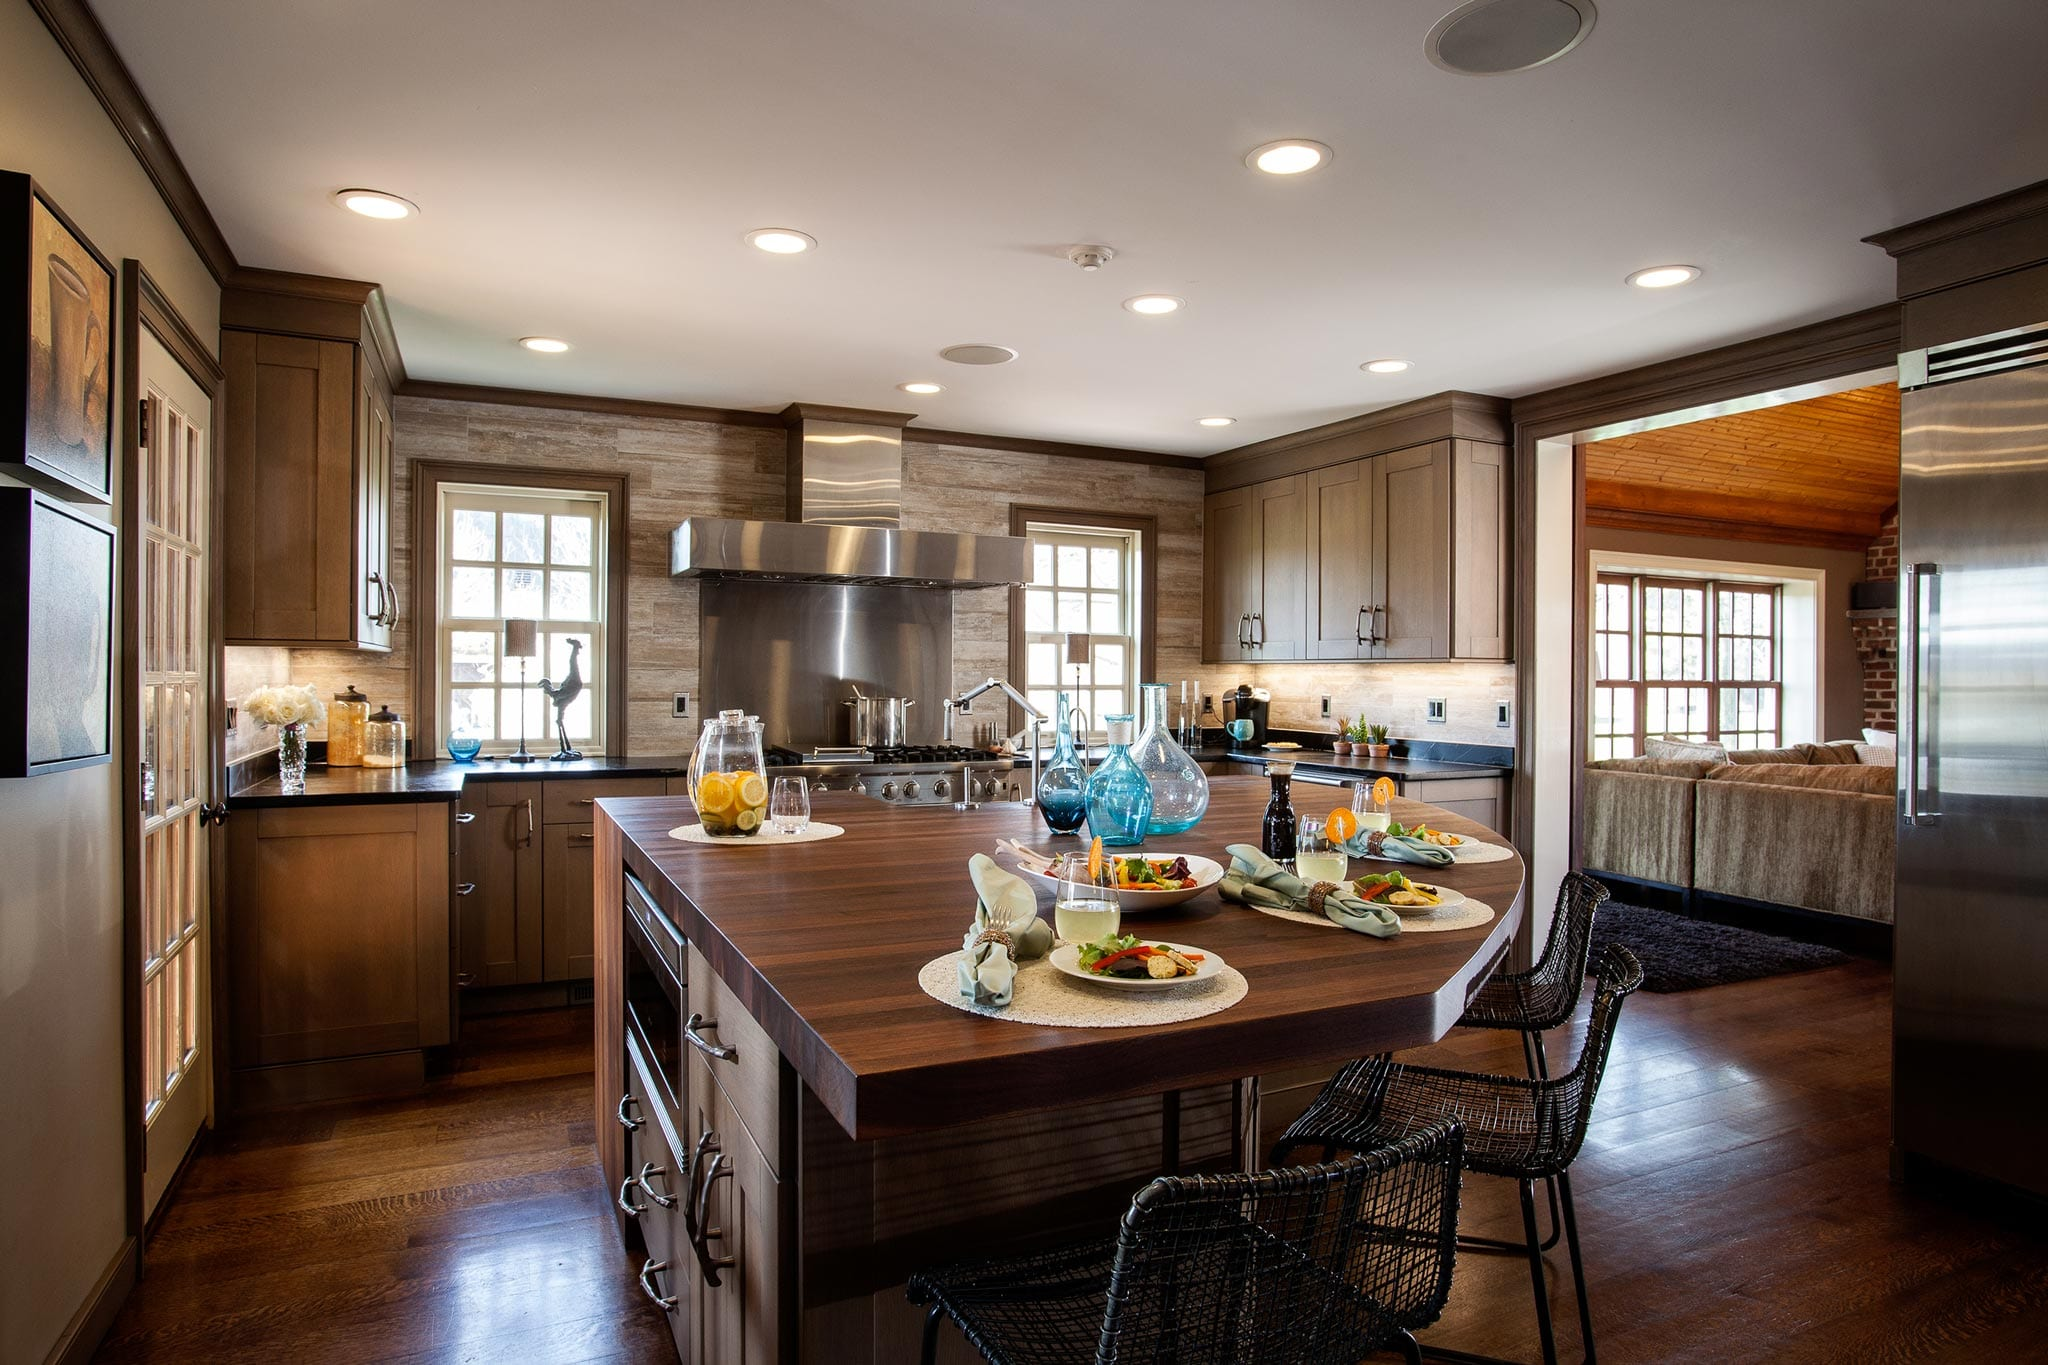 mhcustom kitchen remodeling york pa Kitchen Remodeling Kitchen Design Mother Hubbard s Custom Cabinetry